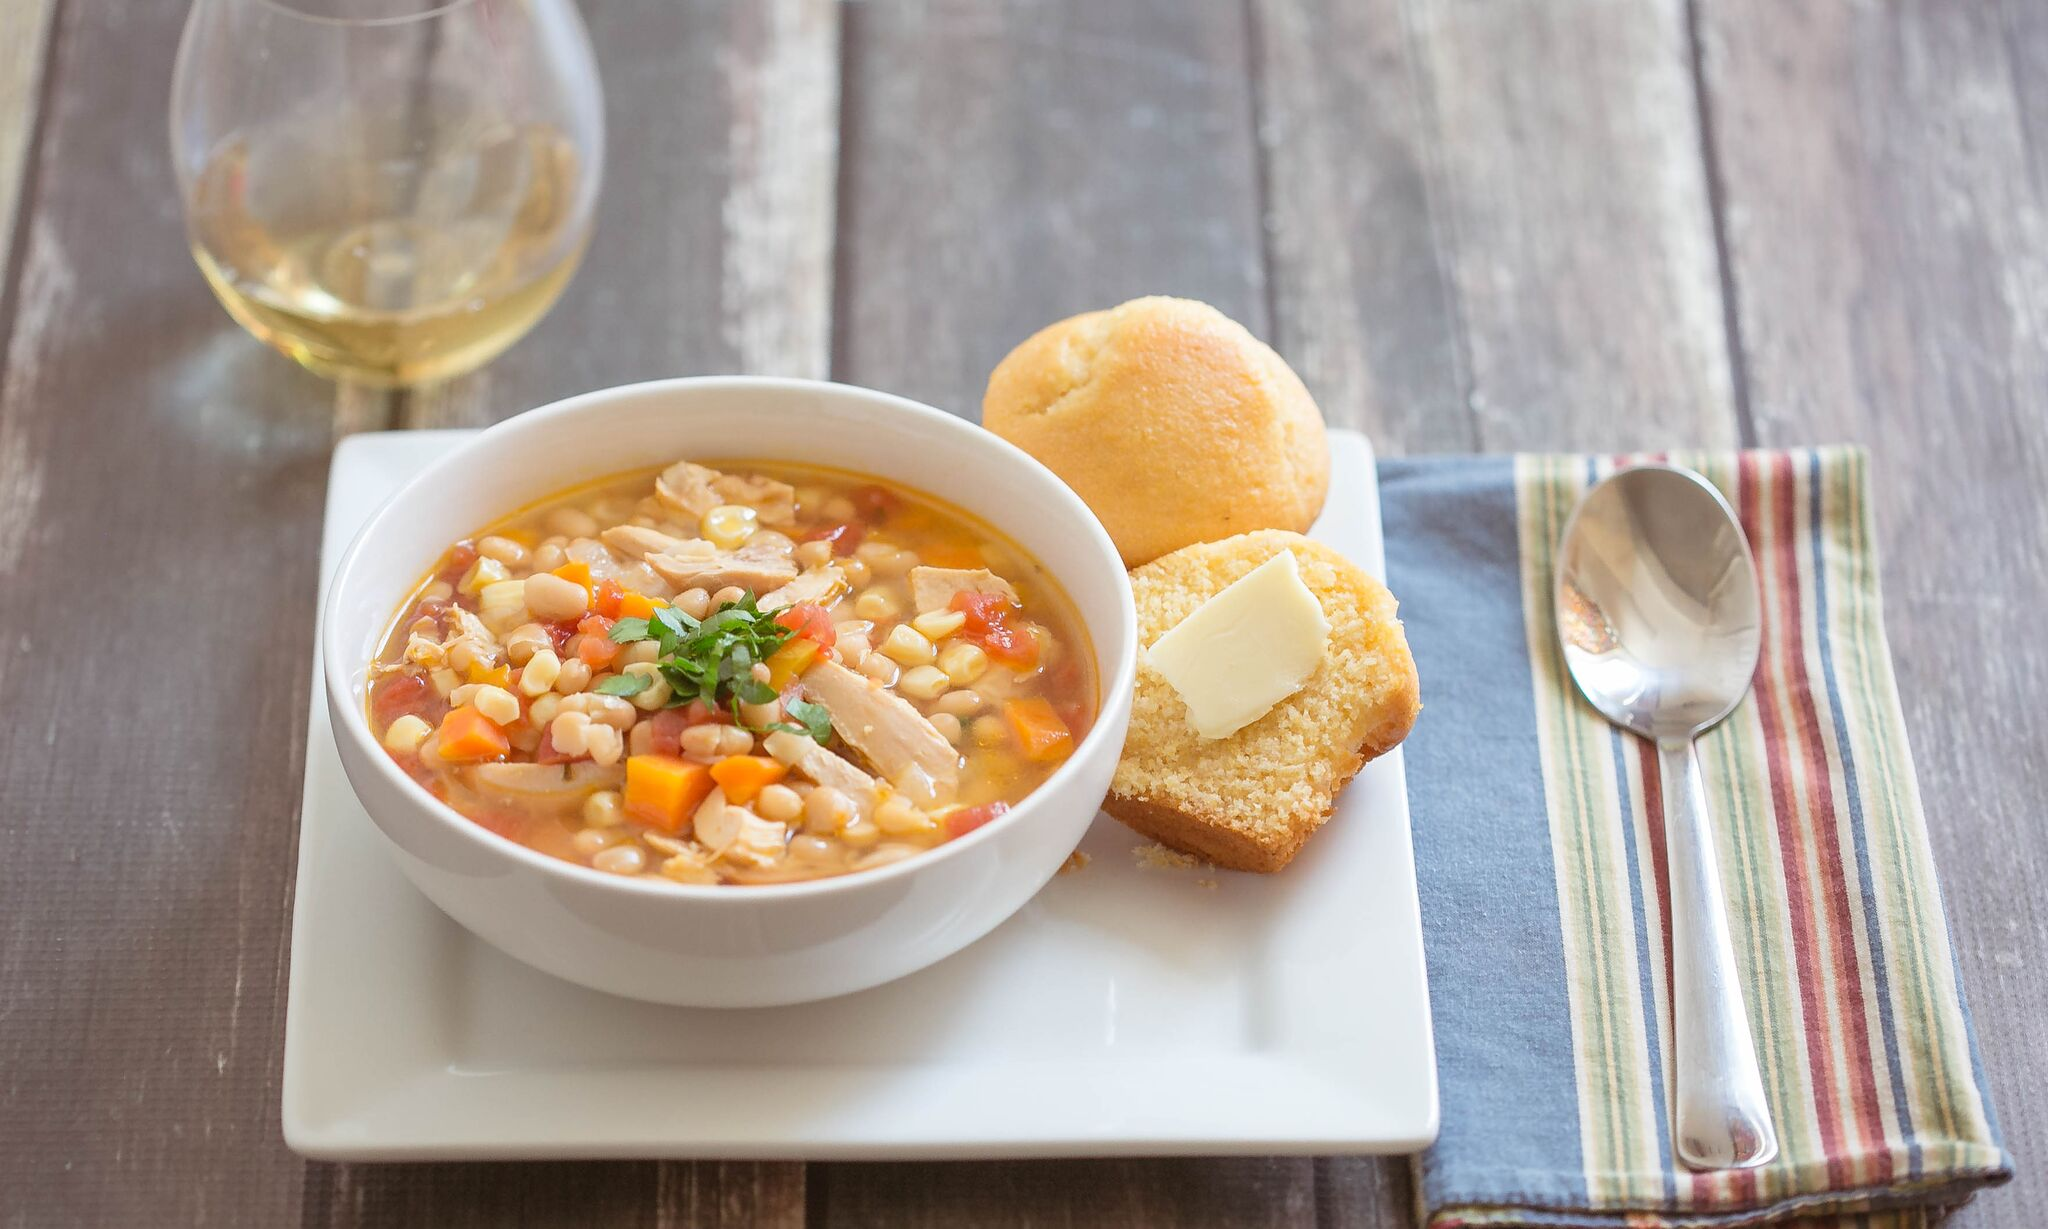 Serve this spicy chicken and bean soup with a side of cornbread for a delicious fall meal